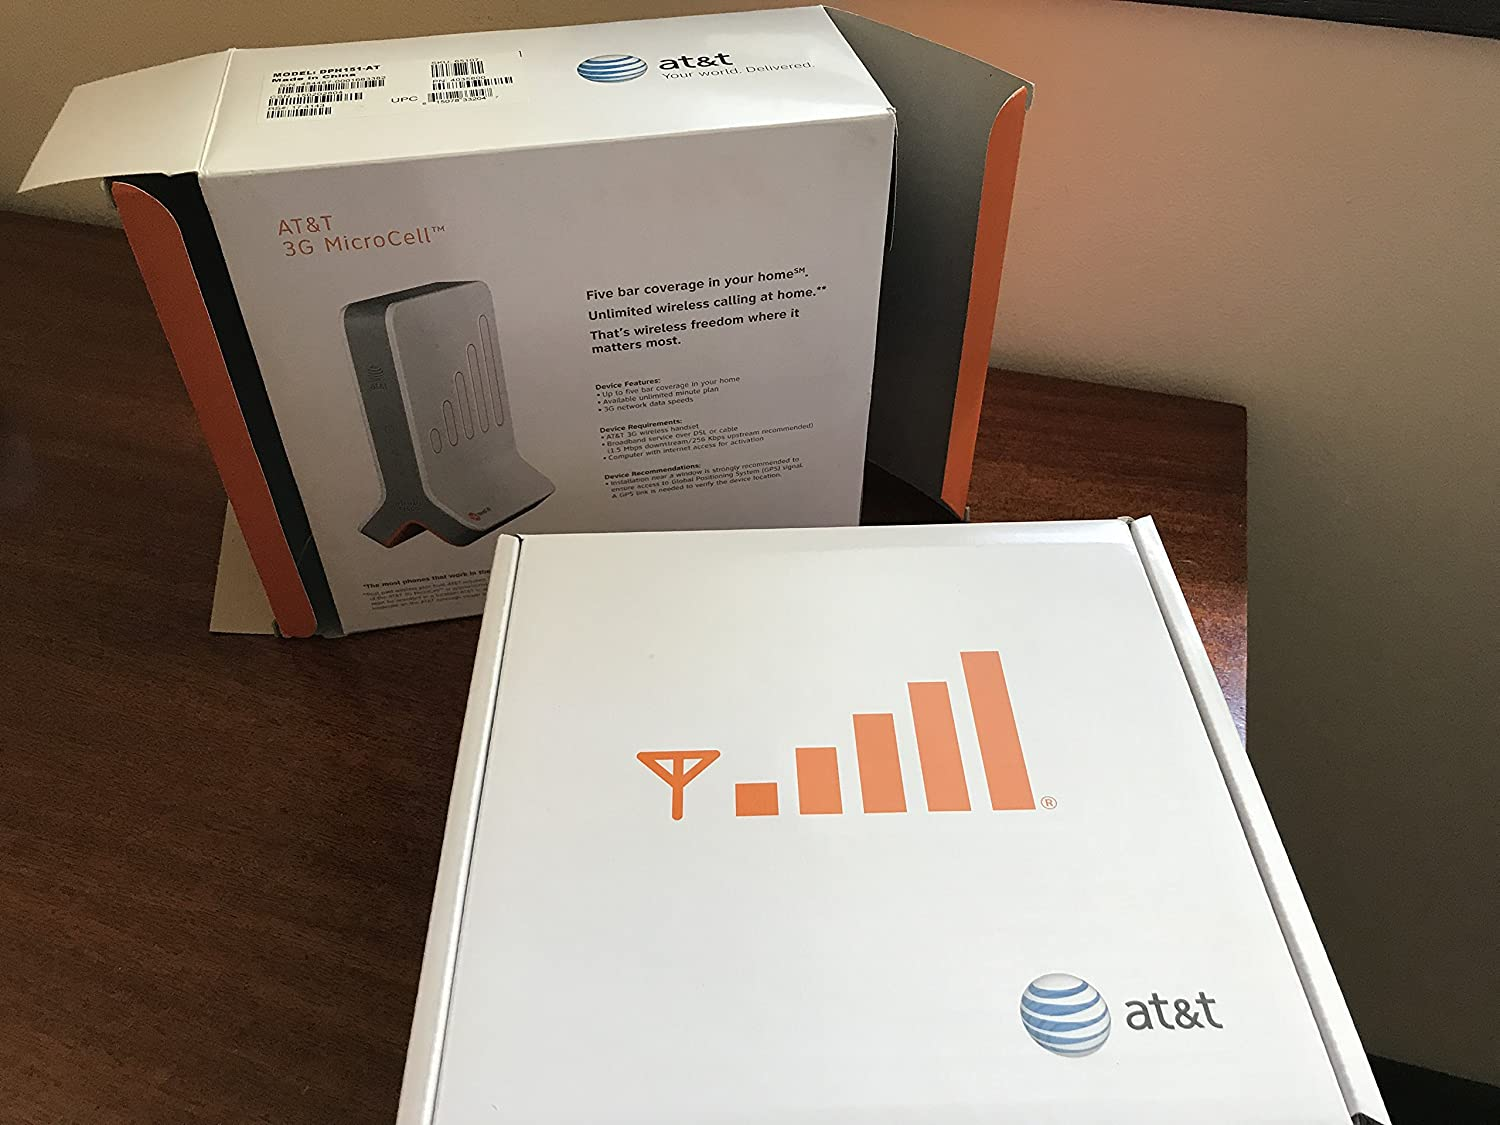 Att Microcell Wireless 3g Cell Signal Booster Tower At Amp T Home Phone Network Diagram Antenna Computers Accessories